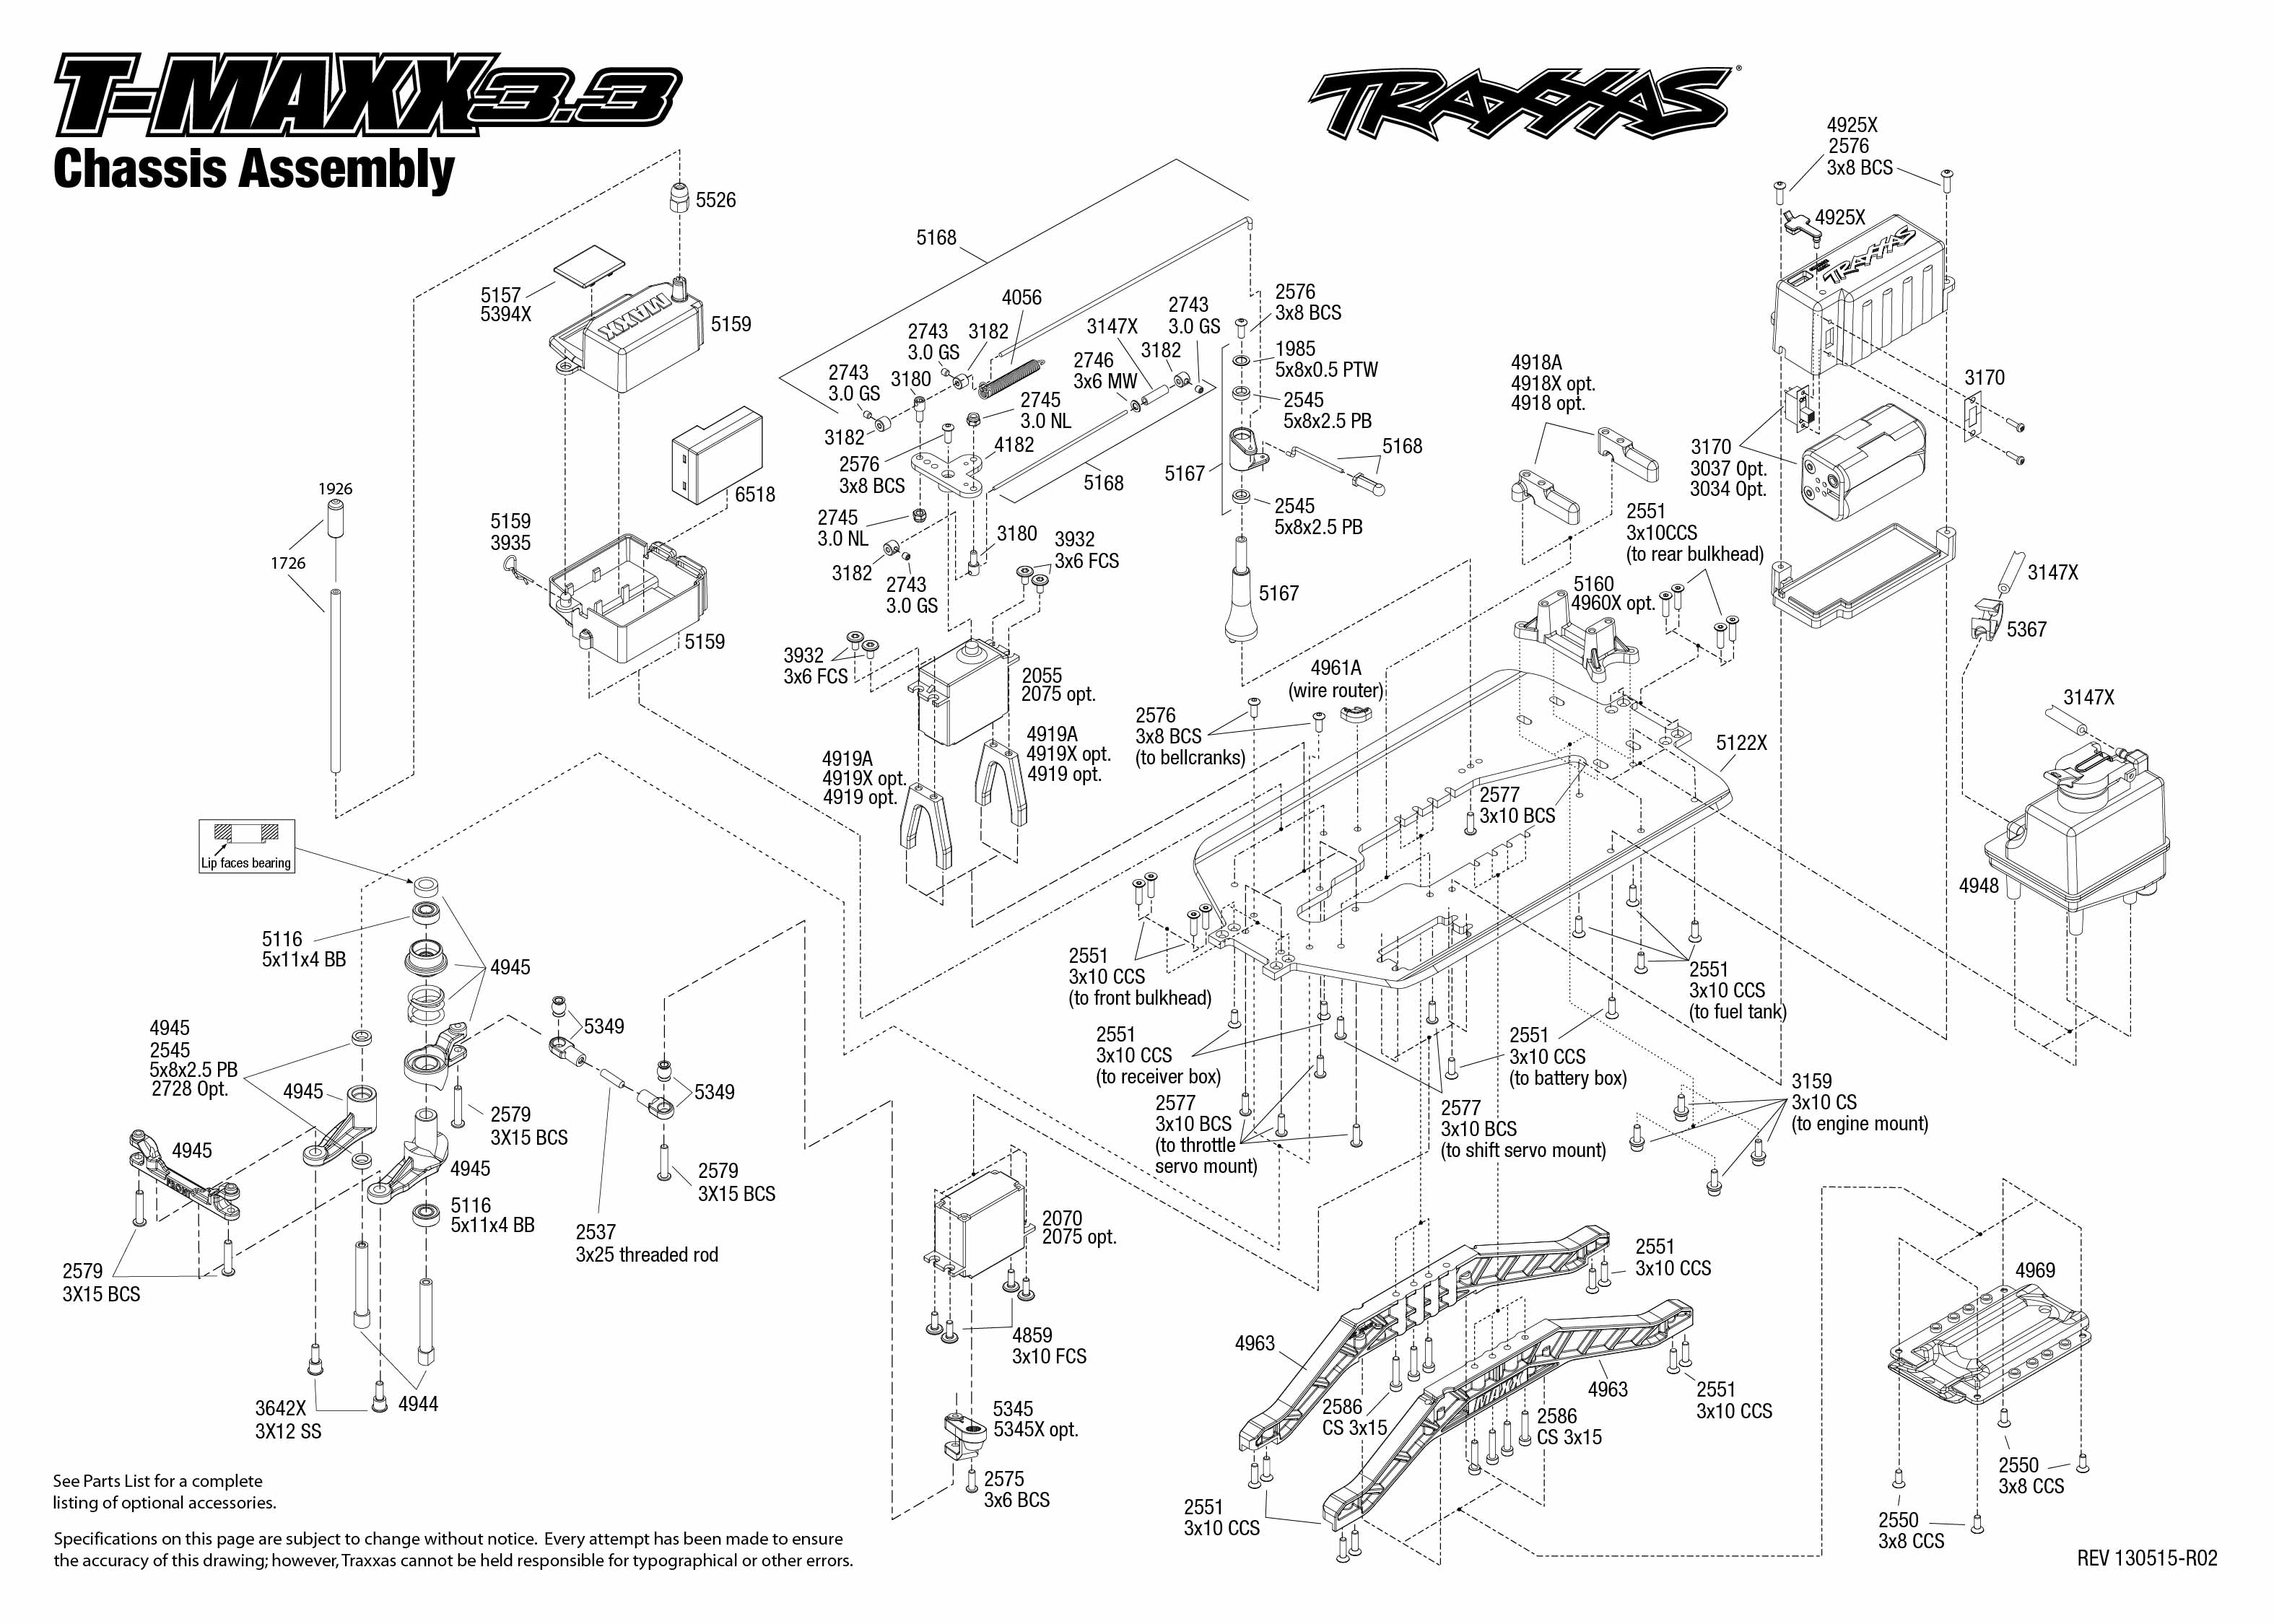 Traxxas Wiring Diagram